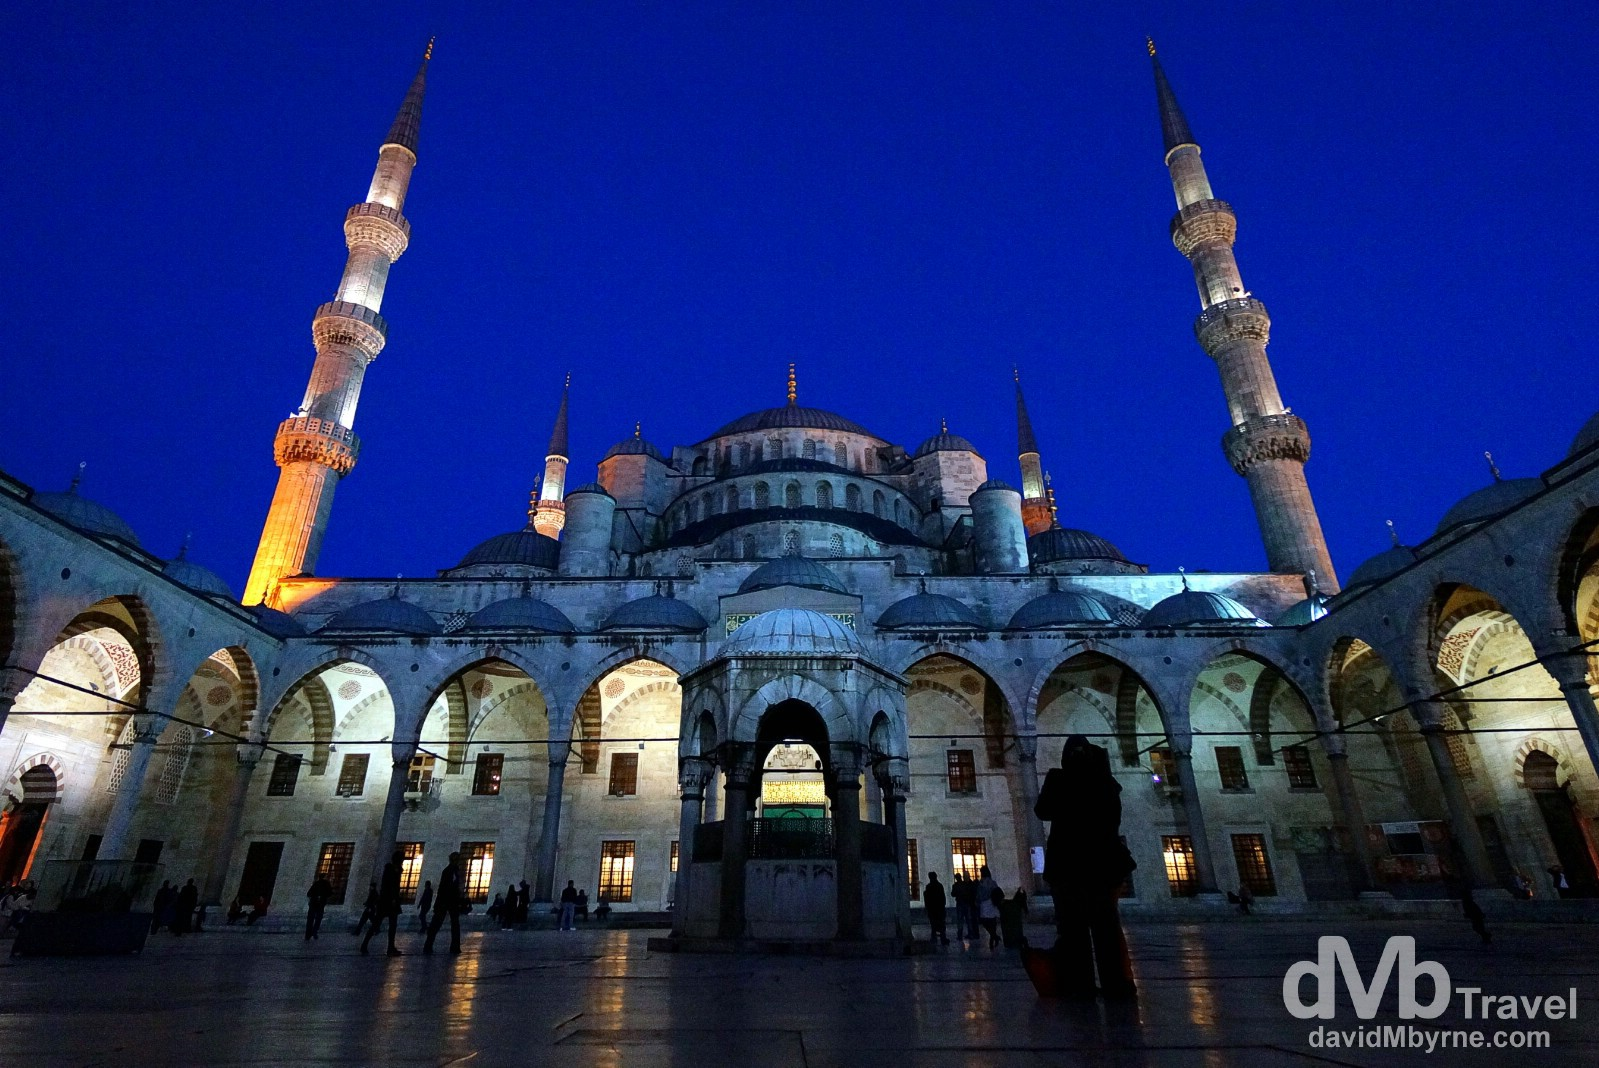 The inner courtyard of the Sultan Ahmed Mosque, aka The Blue Mosque, in Istanbul, Turkey. April 9th, 2014.